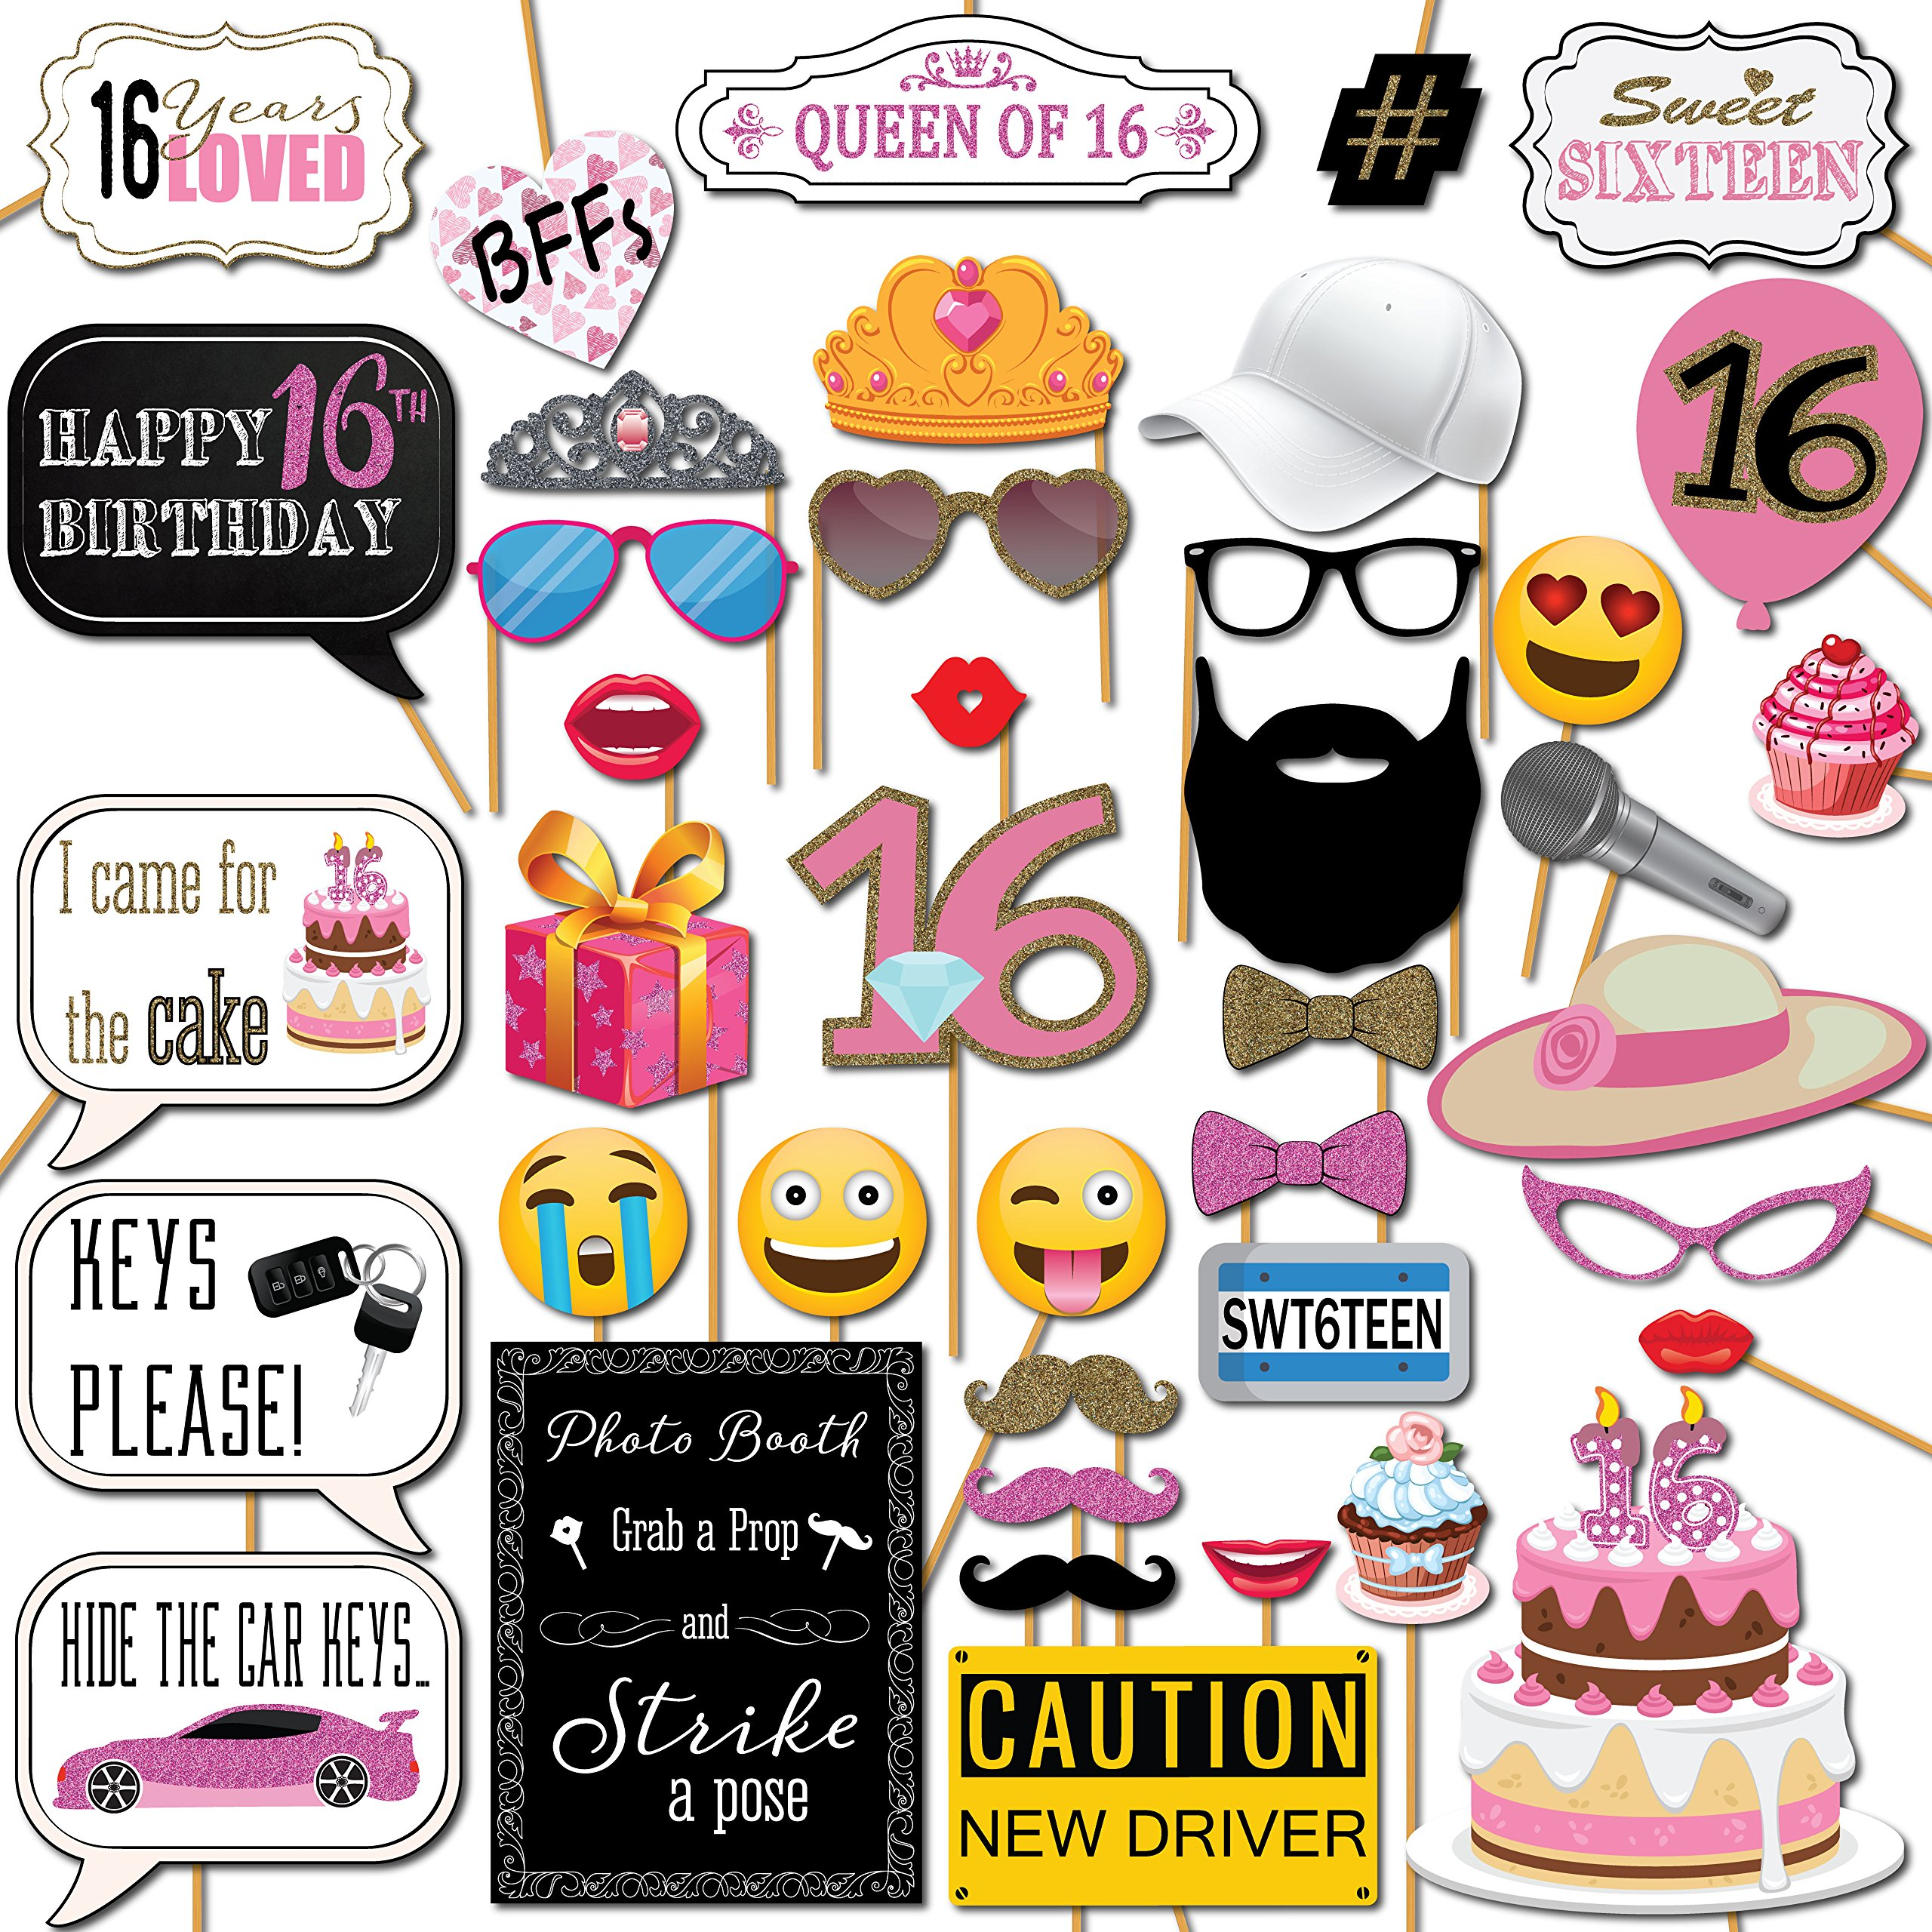 Sweet 16 Birthday Photo Booth Props Party Kit 41 Pieces With Wooden